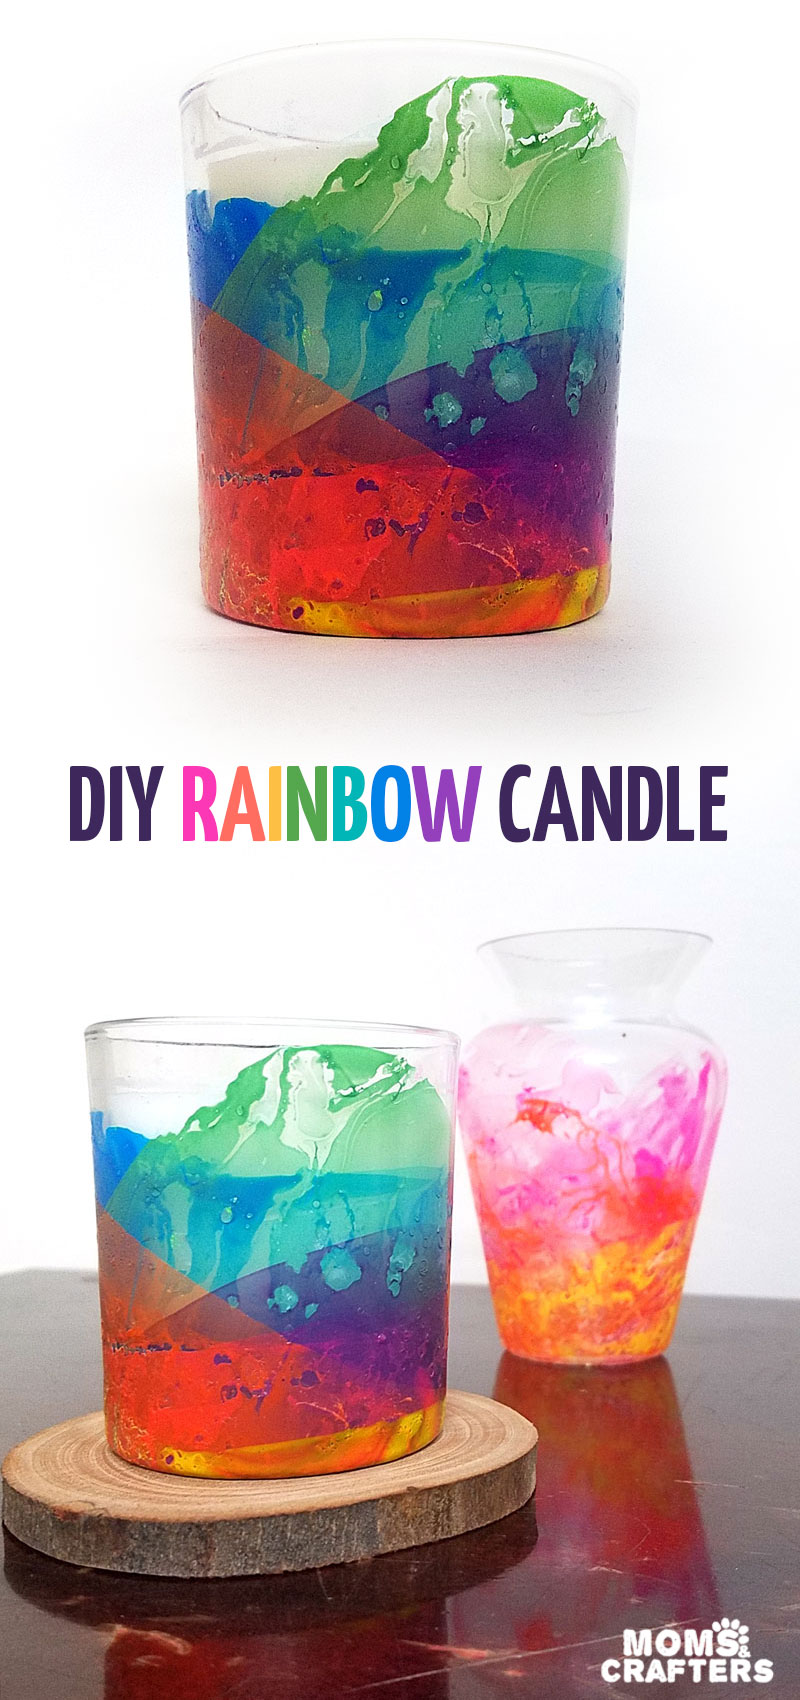 Make this beautiful rainbow candle as a DIY gift or a pretty home decor! The sheer layers of nail polish look a bit like water colors and the texture adds so much life. I had to try a few times to see the best way to make this dipped nail polish rainbow craft but now I can share my best tips with you so you'll get it right the first time (click for details)